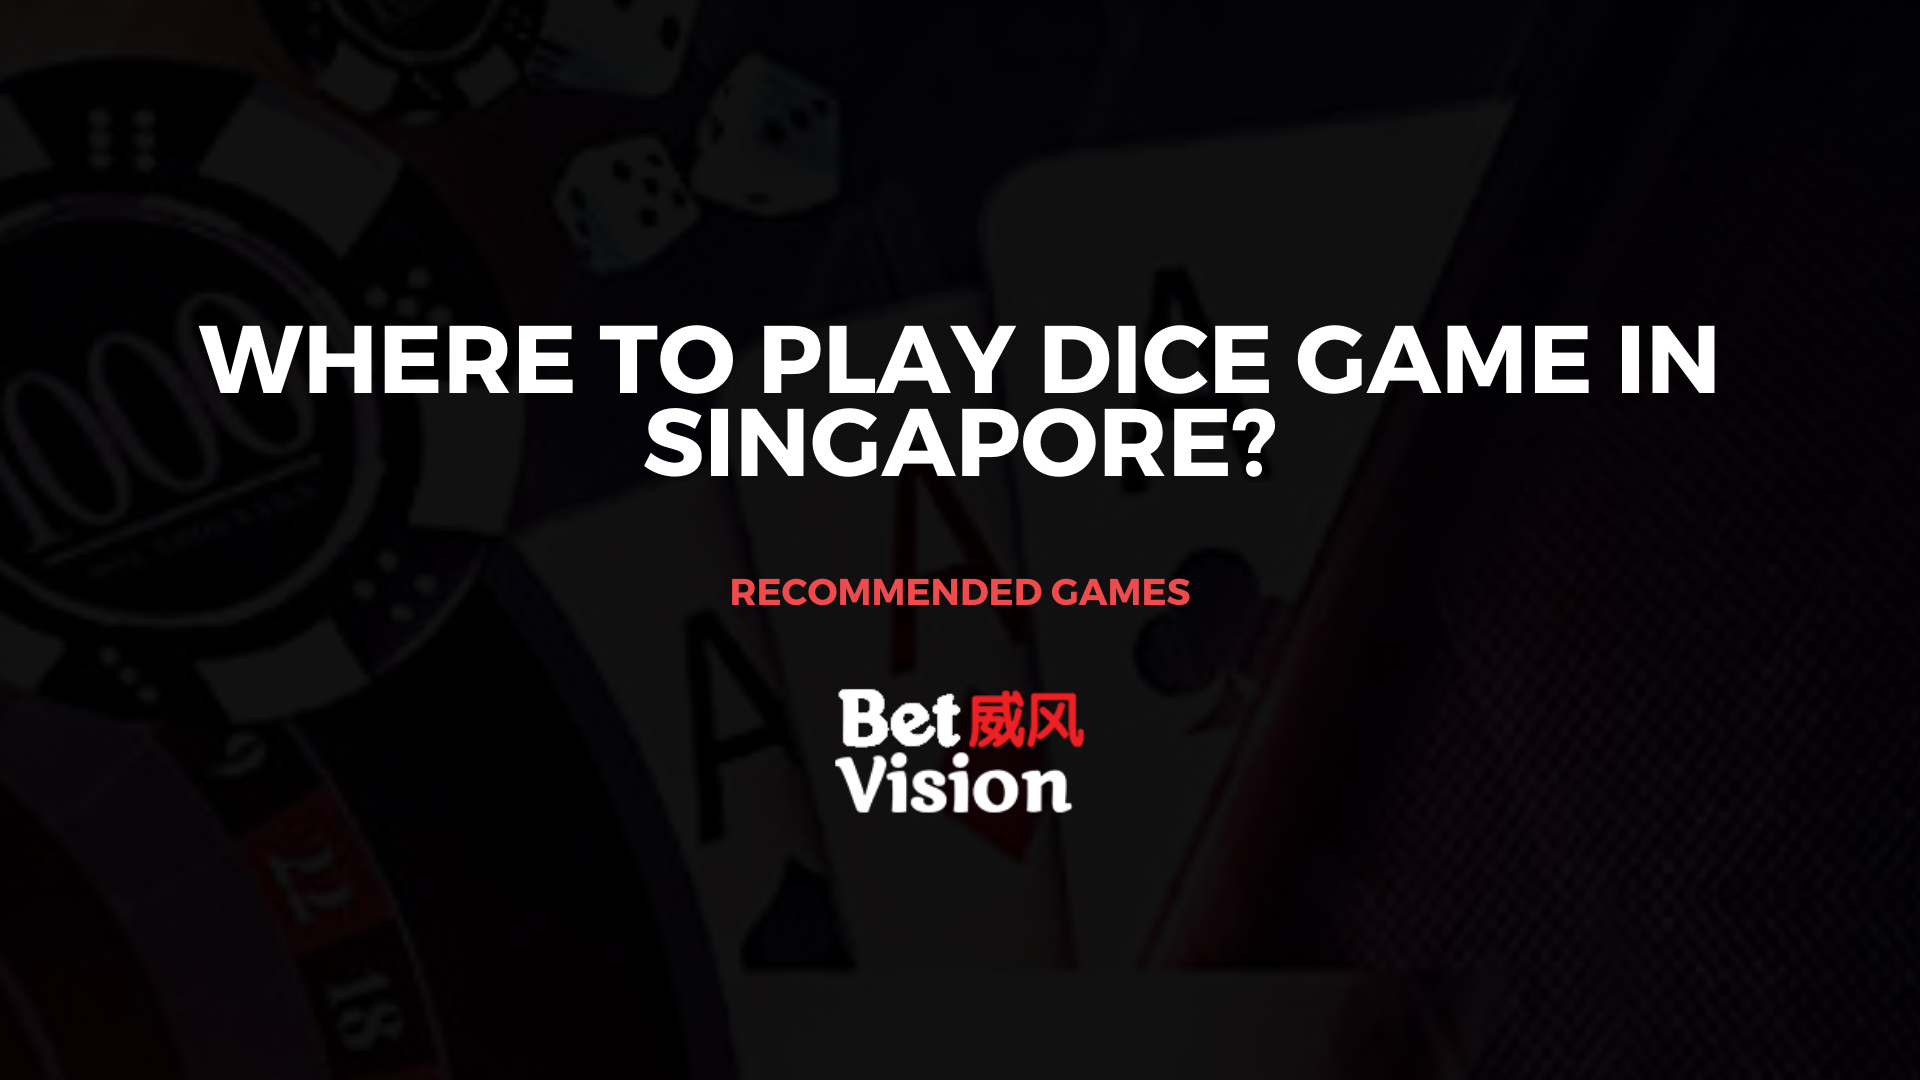 Where To Play Dice Game In Singapore Recommended Games Dice Games Singapore Game Presents